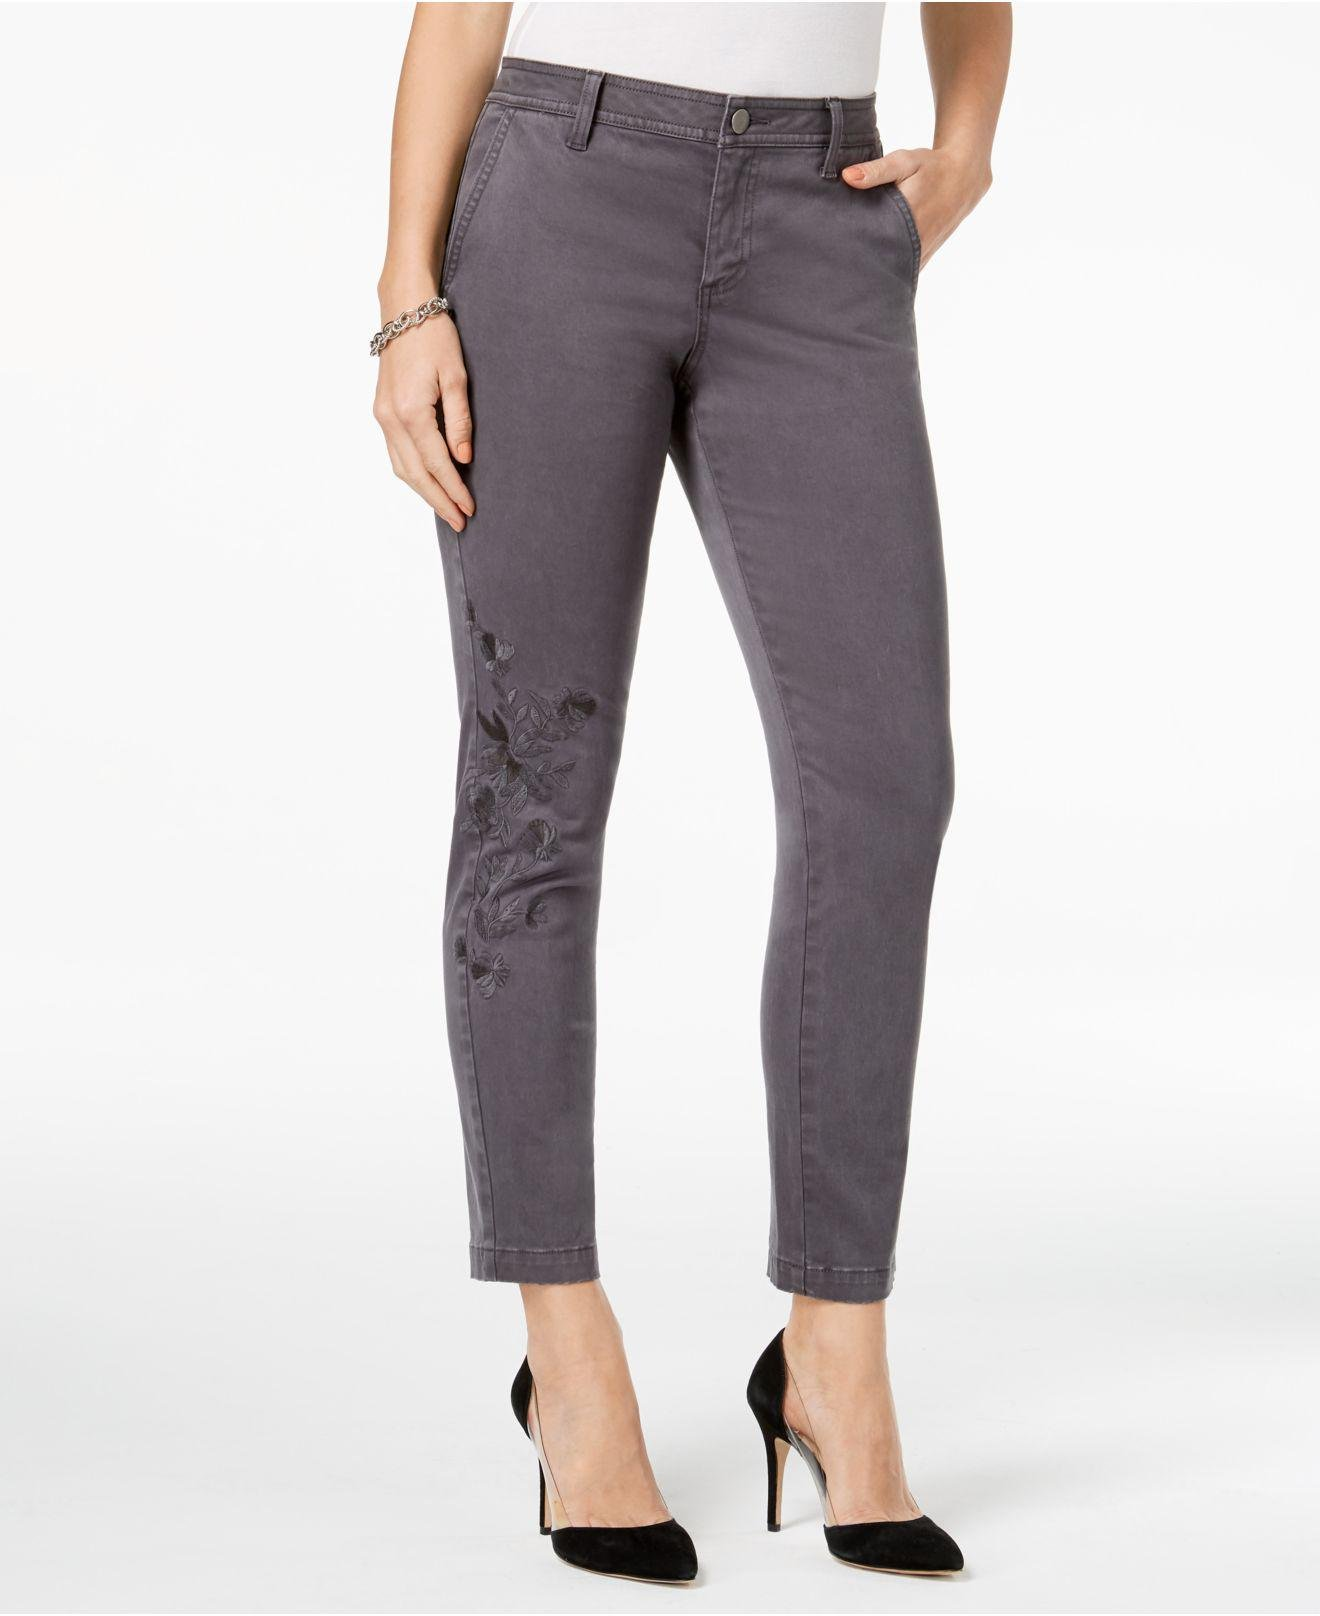 "As someone who is 4'11"" shopping for jeans is a constant struggle. Finding clothes that fit can be a challenge, especially if the brands you like don't make specialty petite sizing."